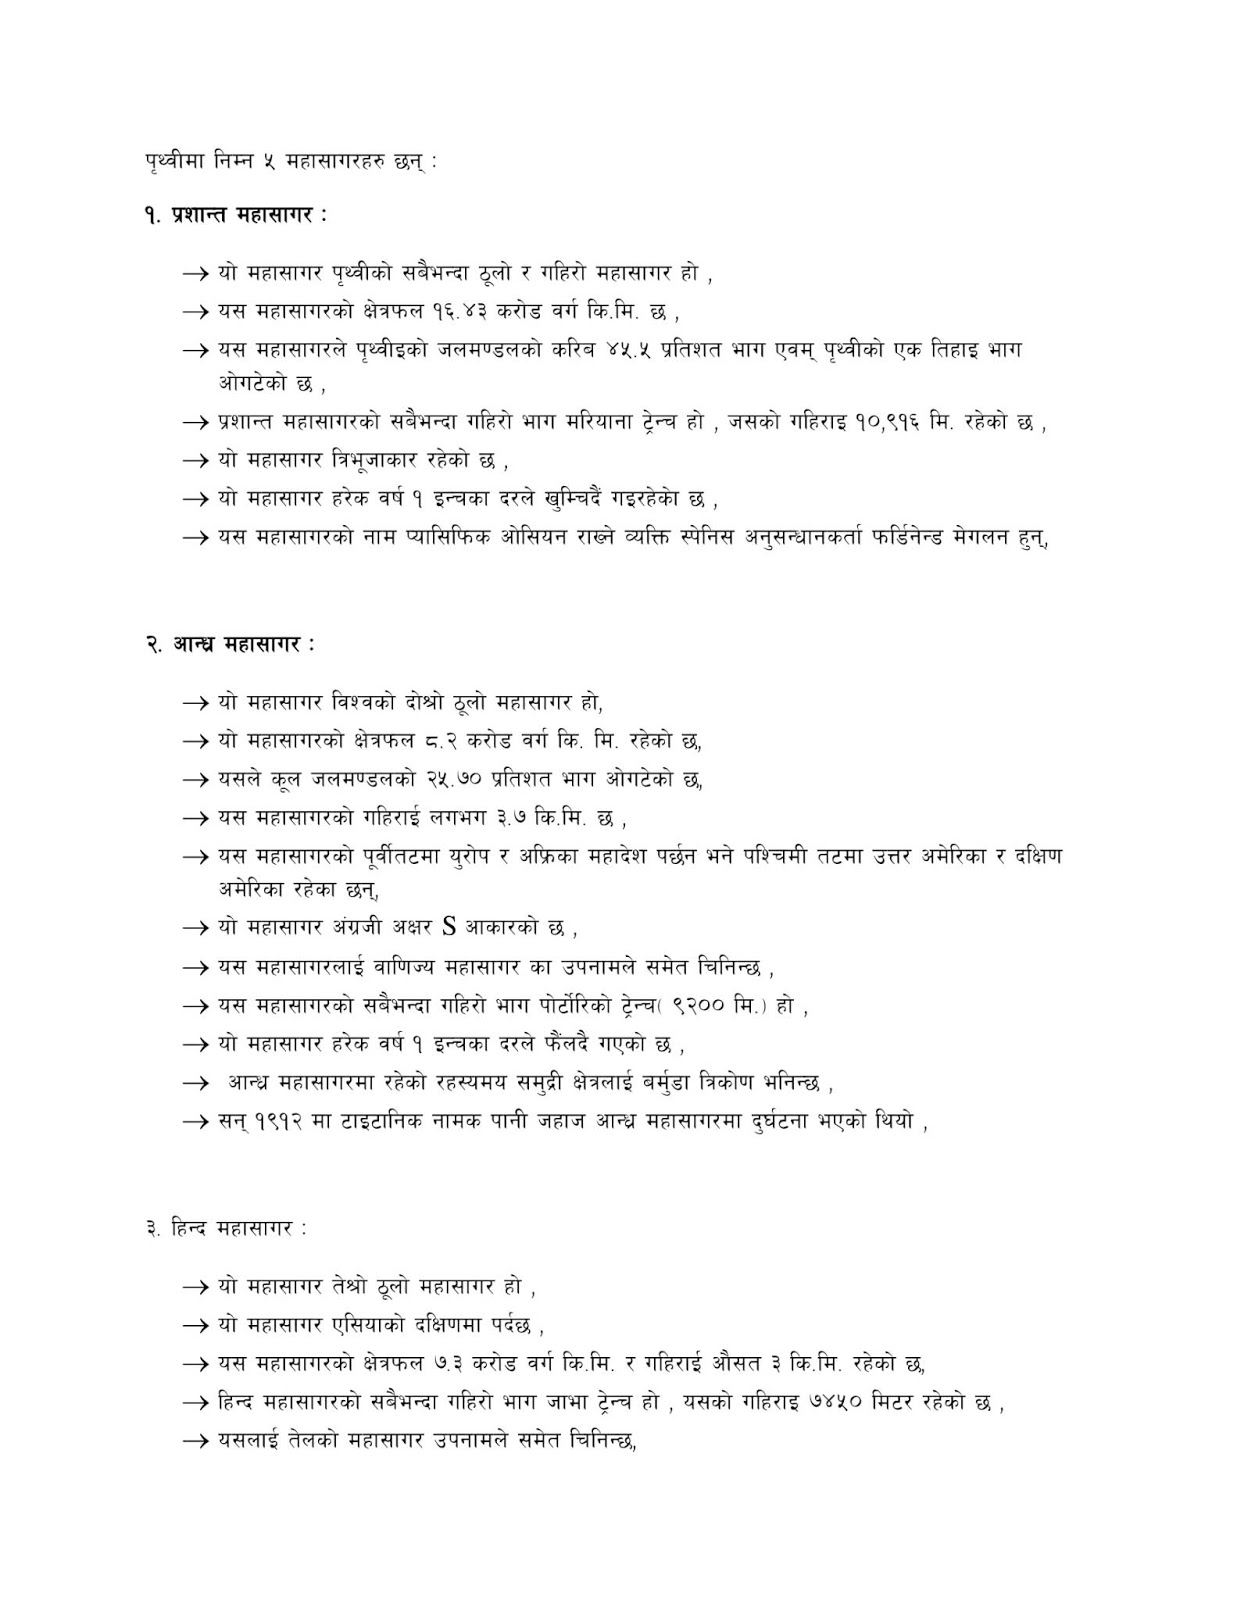 World Geography - Bishwo Bhugol - विश्व भूगोल Important Notes For All